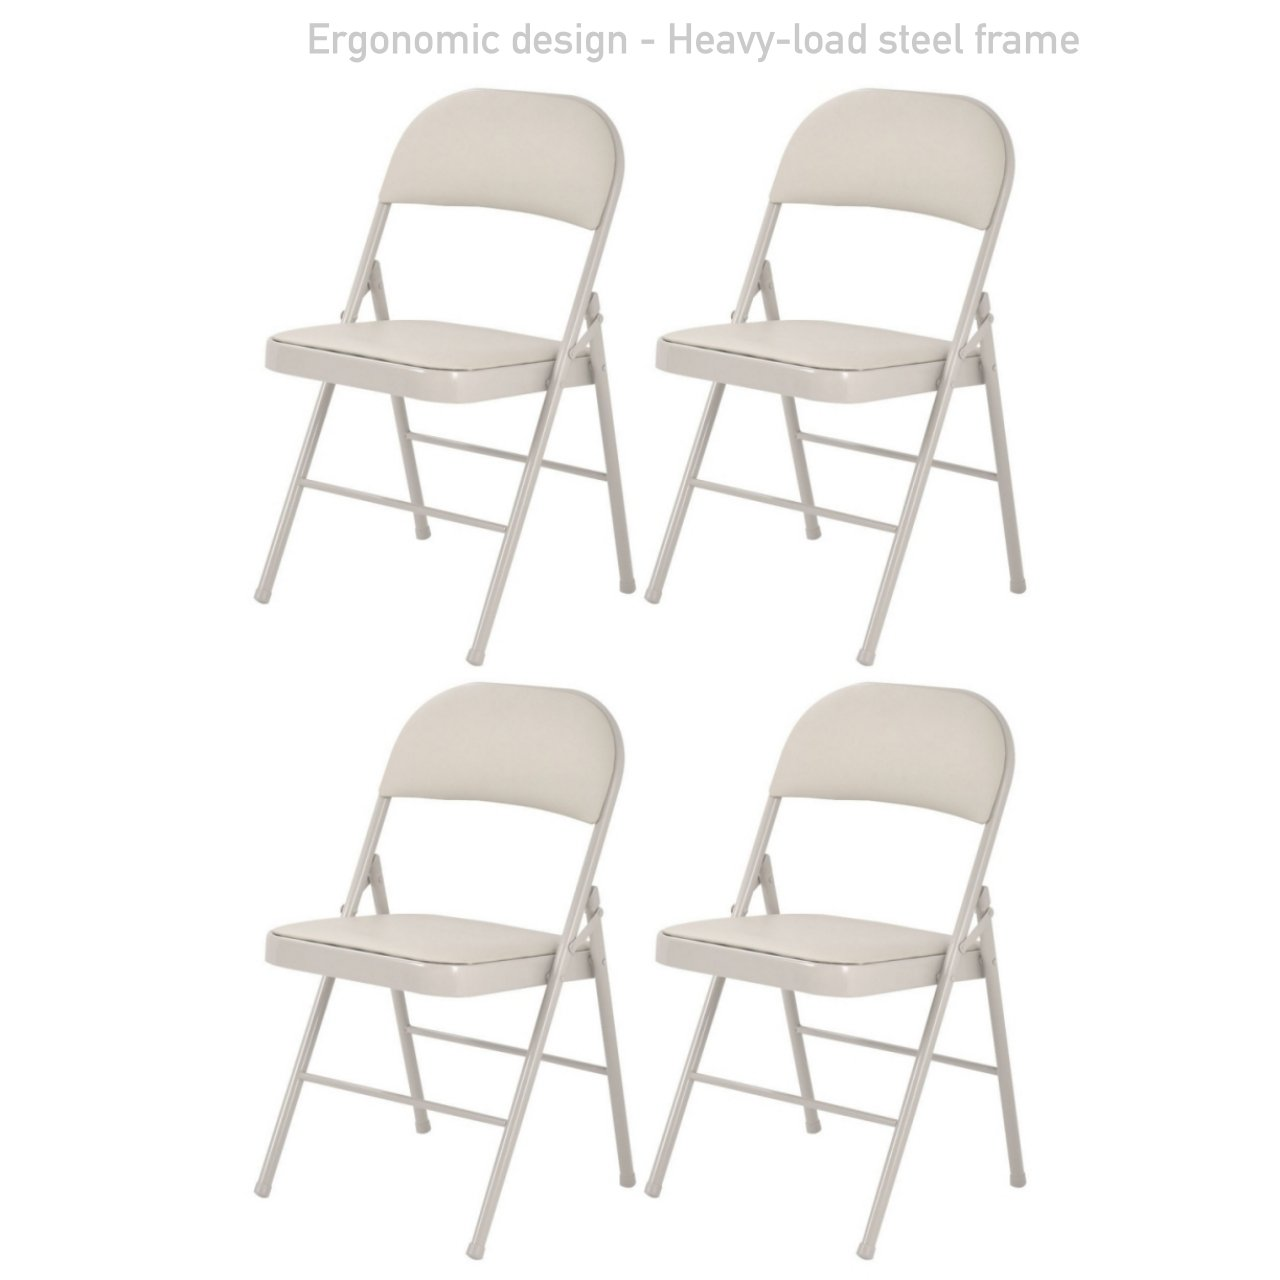 Portable Commercial Folding Chair Wedding Party Holidays Event Seat Durable Heavy-load Steel Frame PU Leather Padded Seat Home Kitchen Office Furniture - Set of 4 Beige # 1730